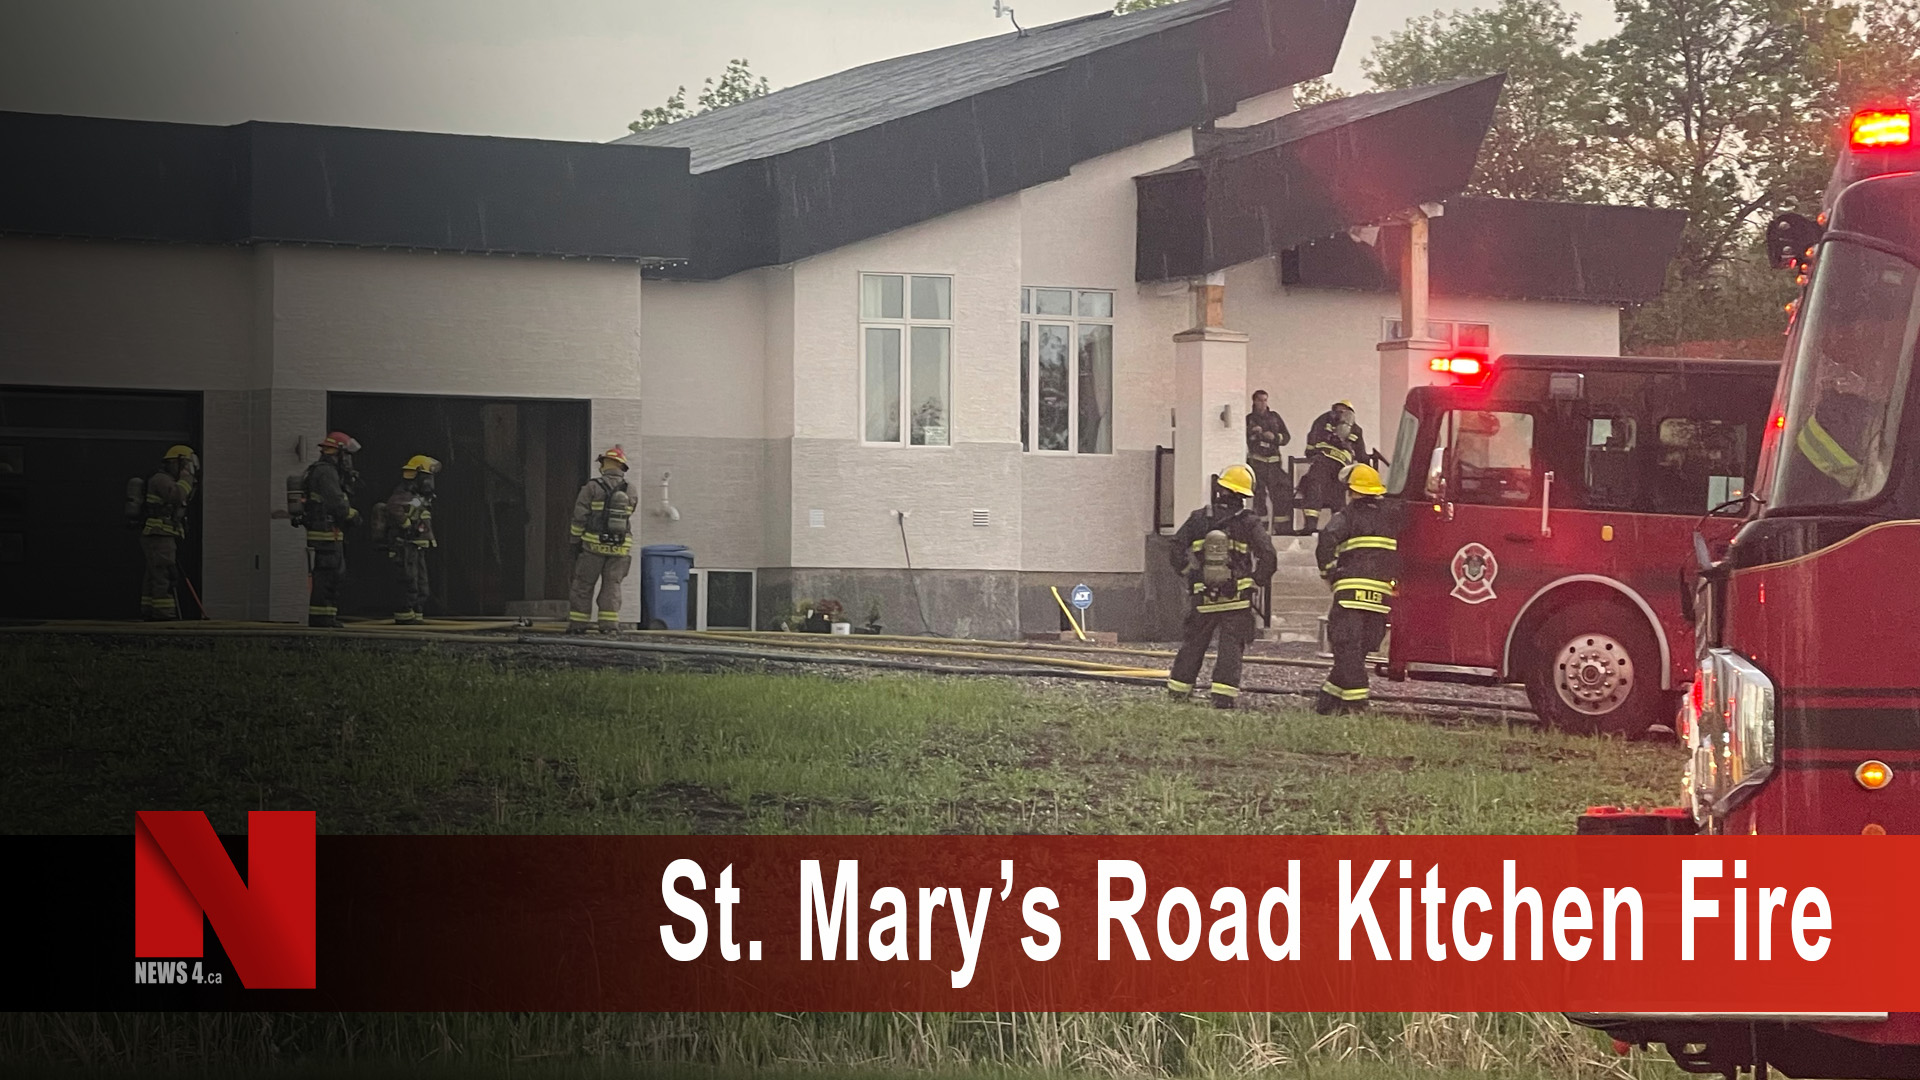 St Mary's road kitchen fire